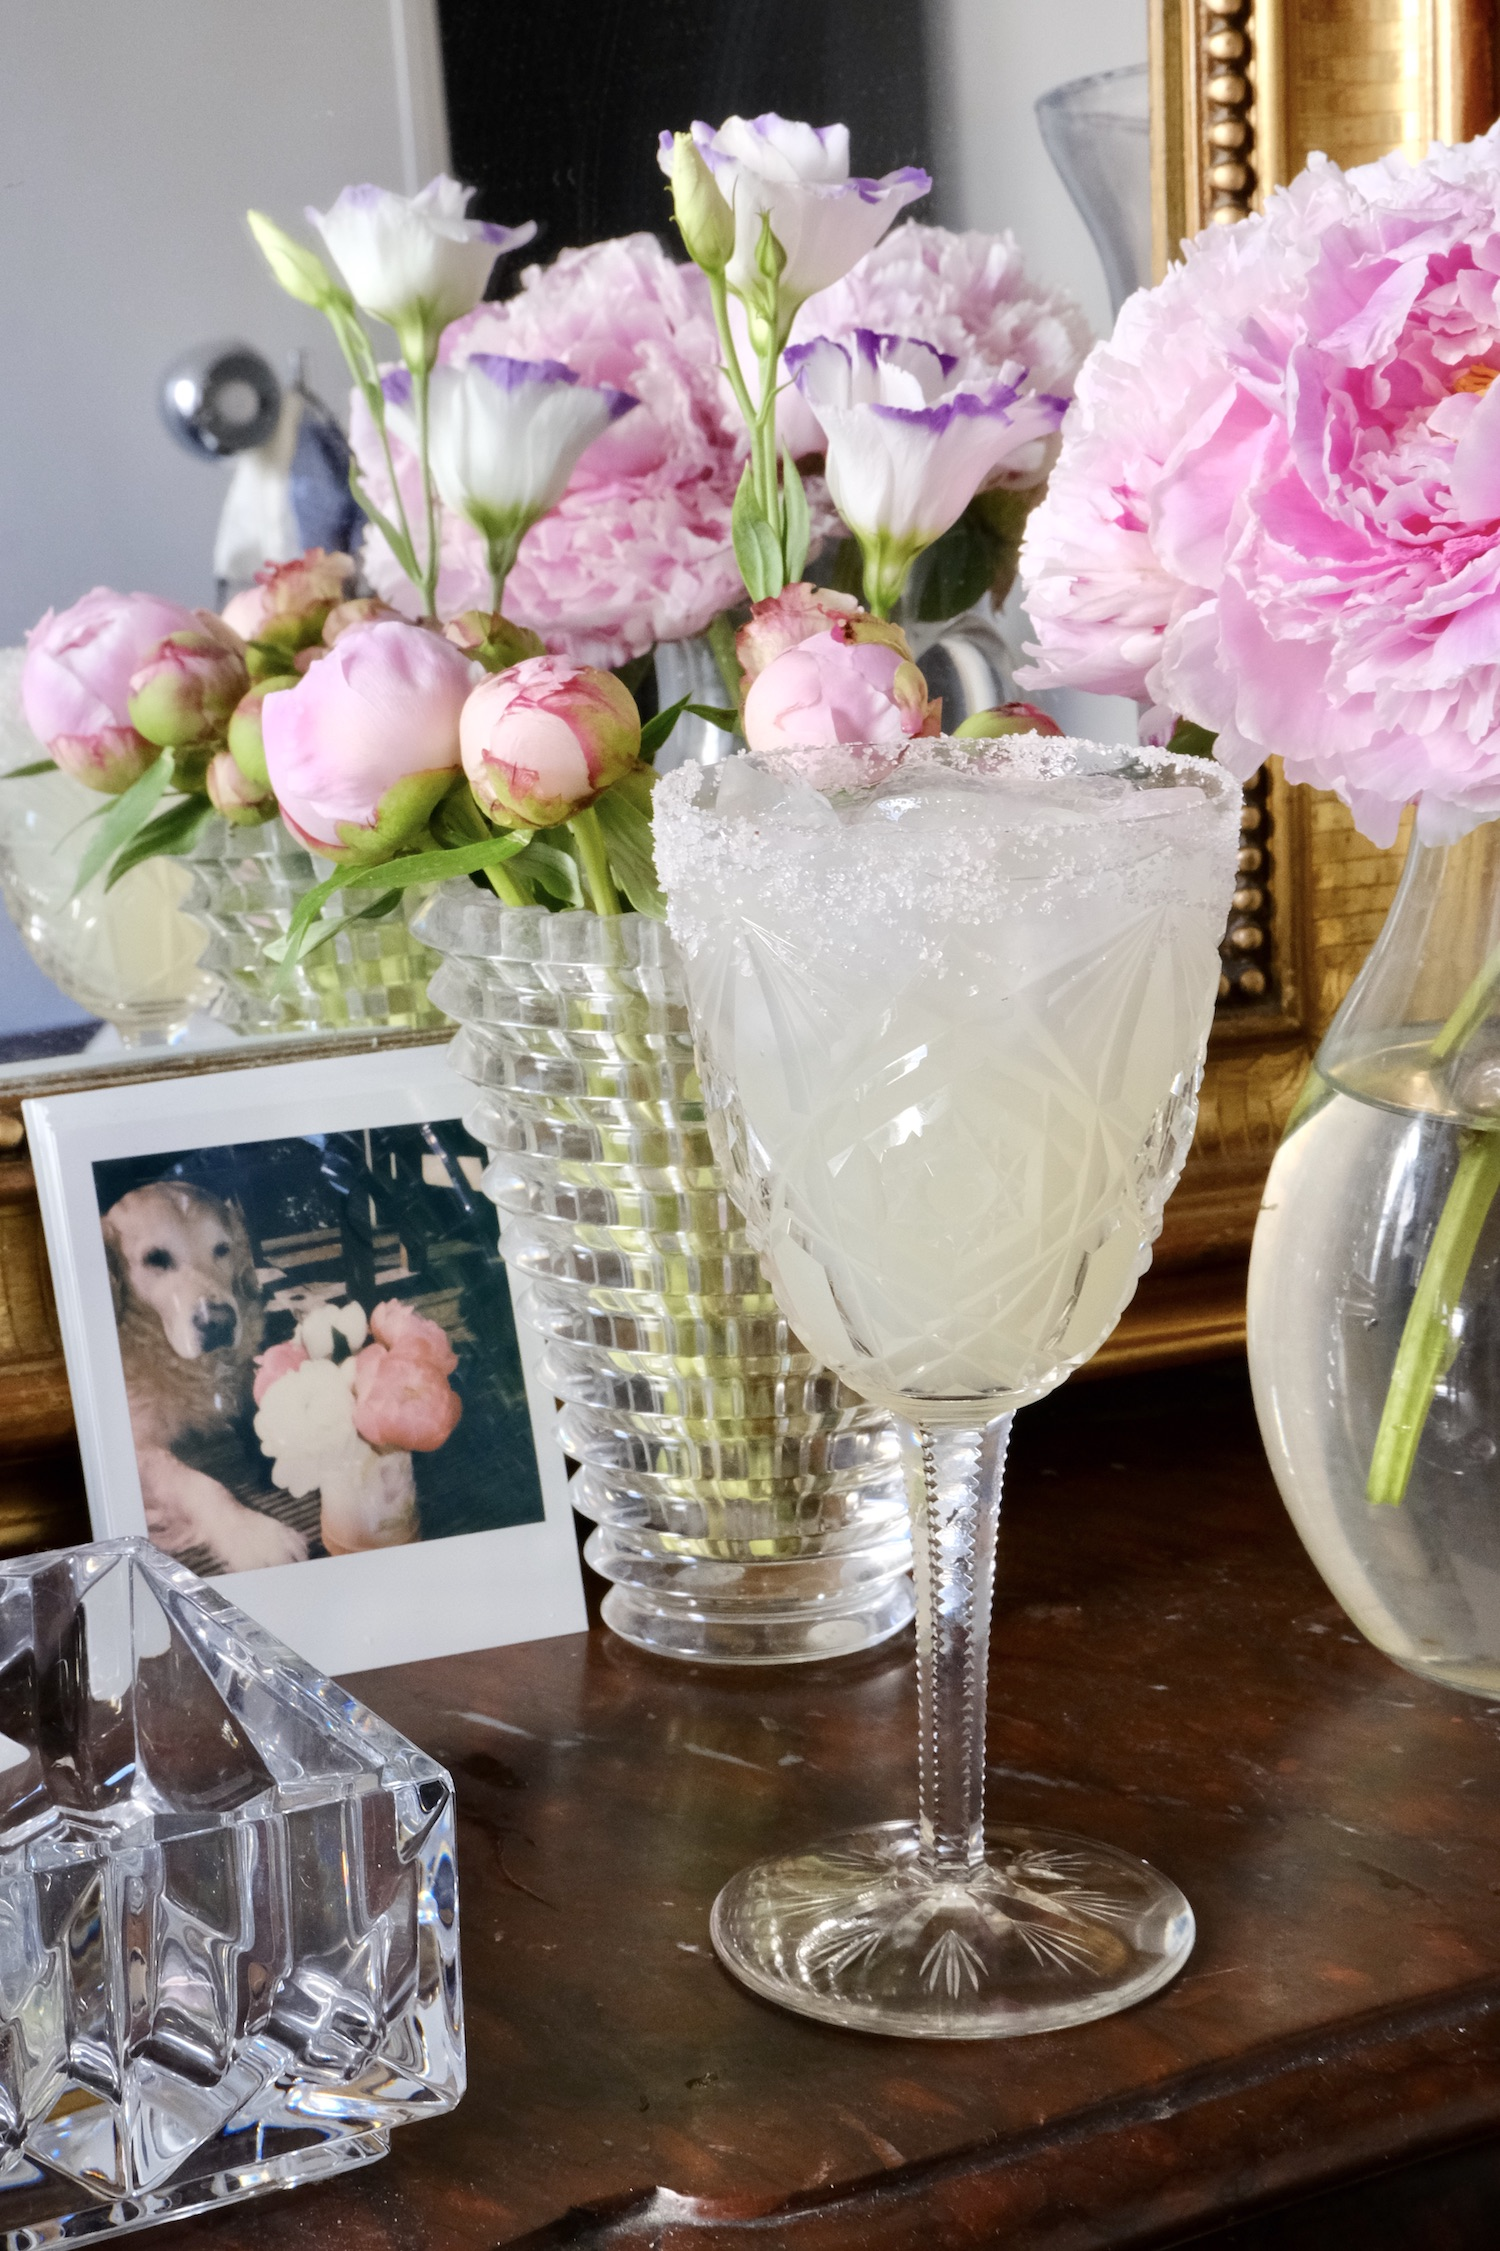 Finished Casa Dragones Margarita in a Baccarat Glass inspired by Martha Stewart's Martha-ritas recipe